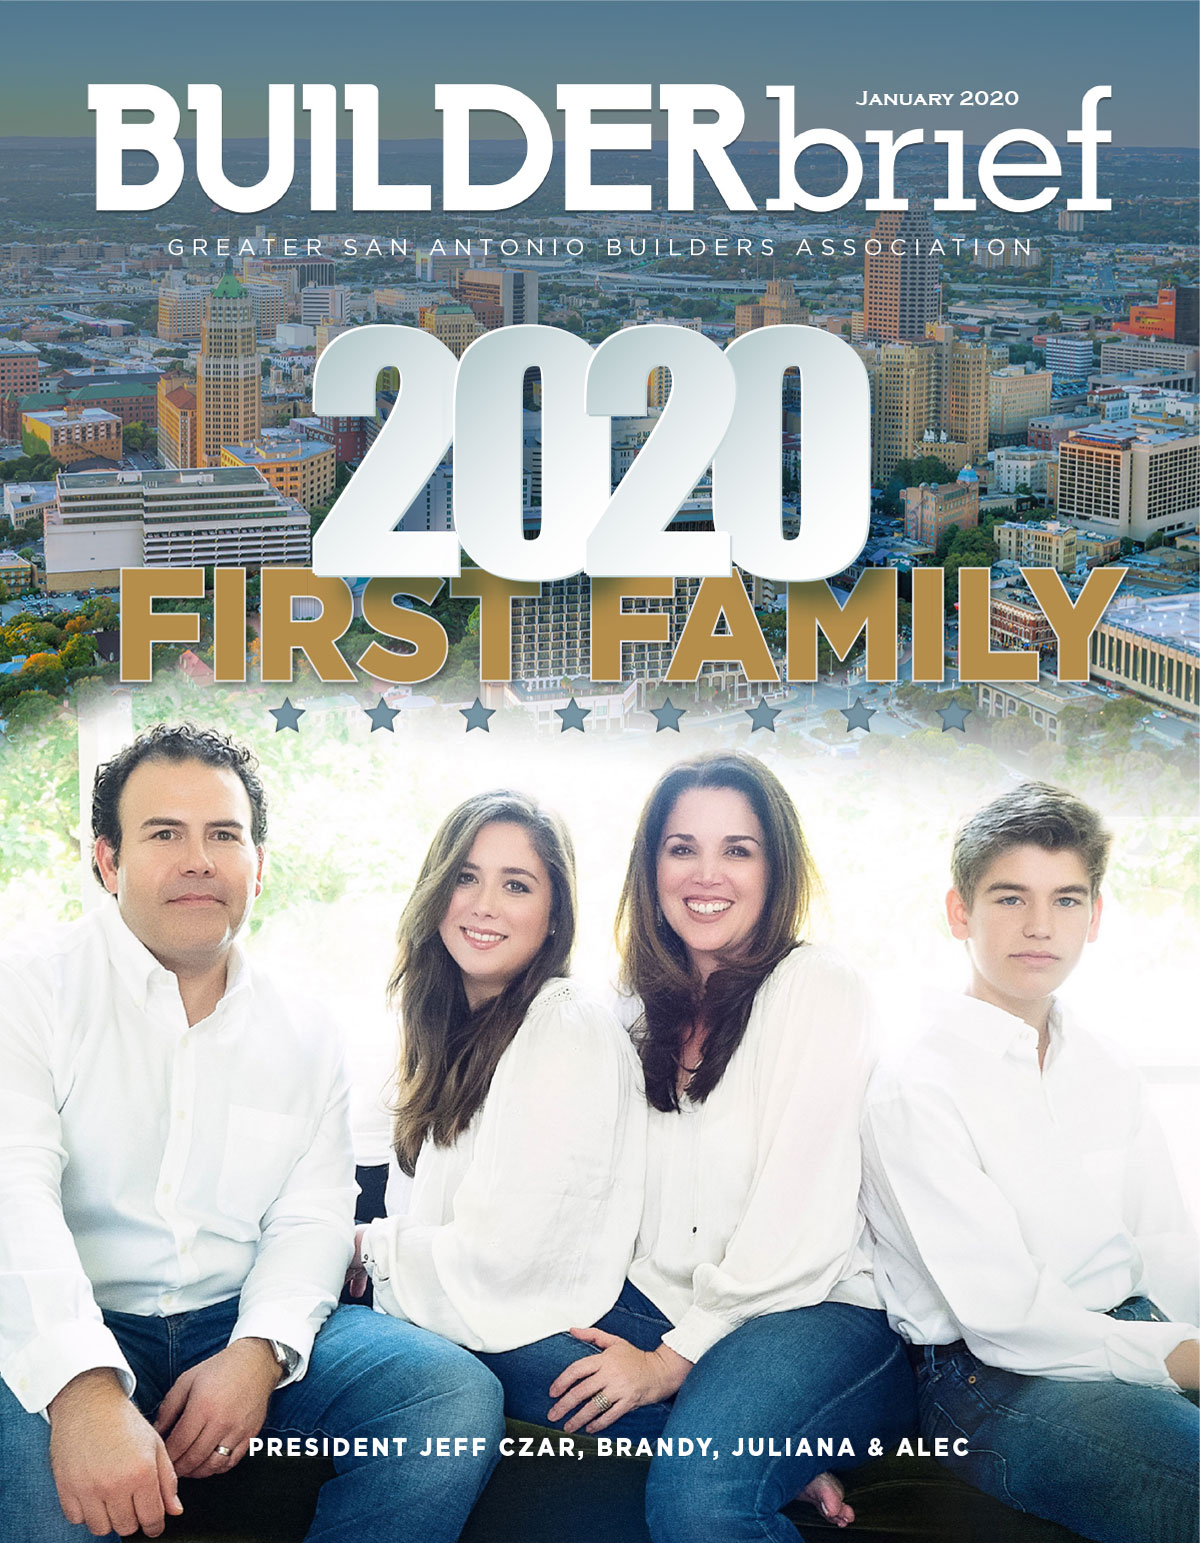 Builder Brief January 2020 Issue